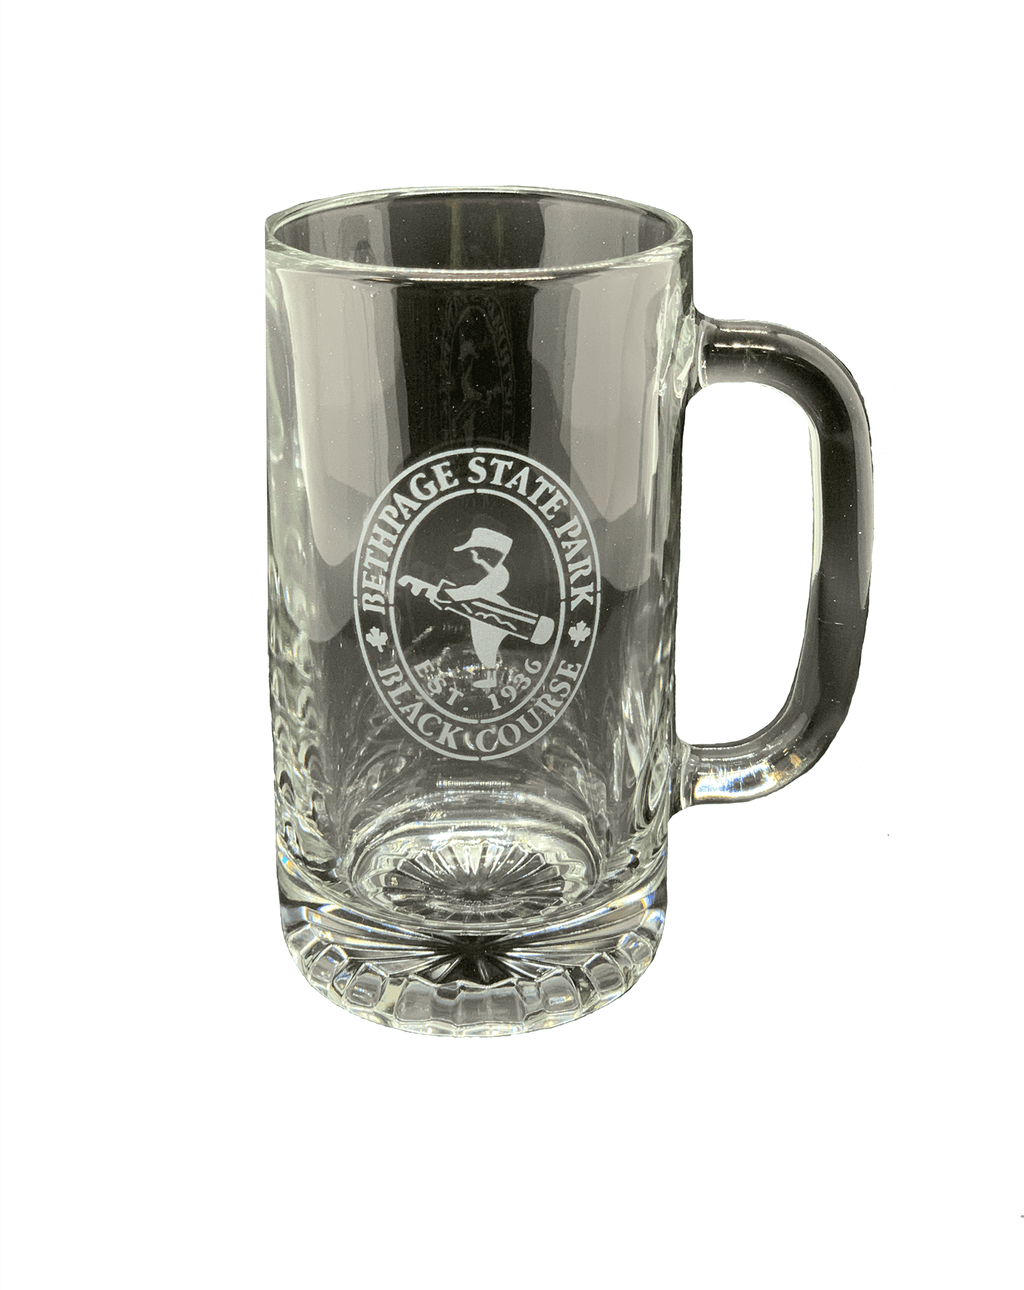 Bethpage Black Course logo engraved on the front of the stein glass